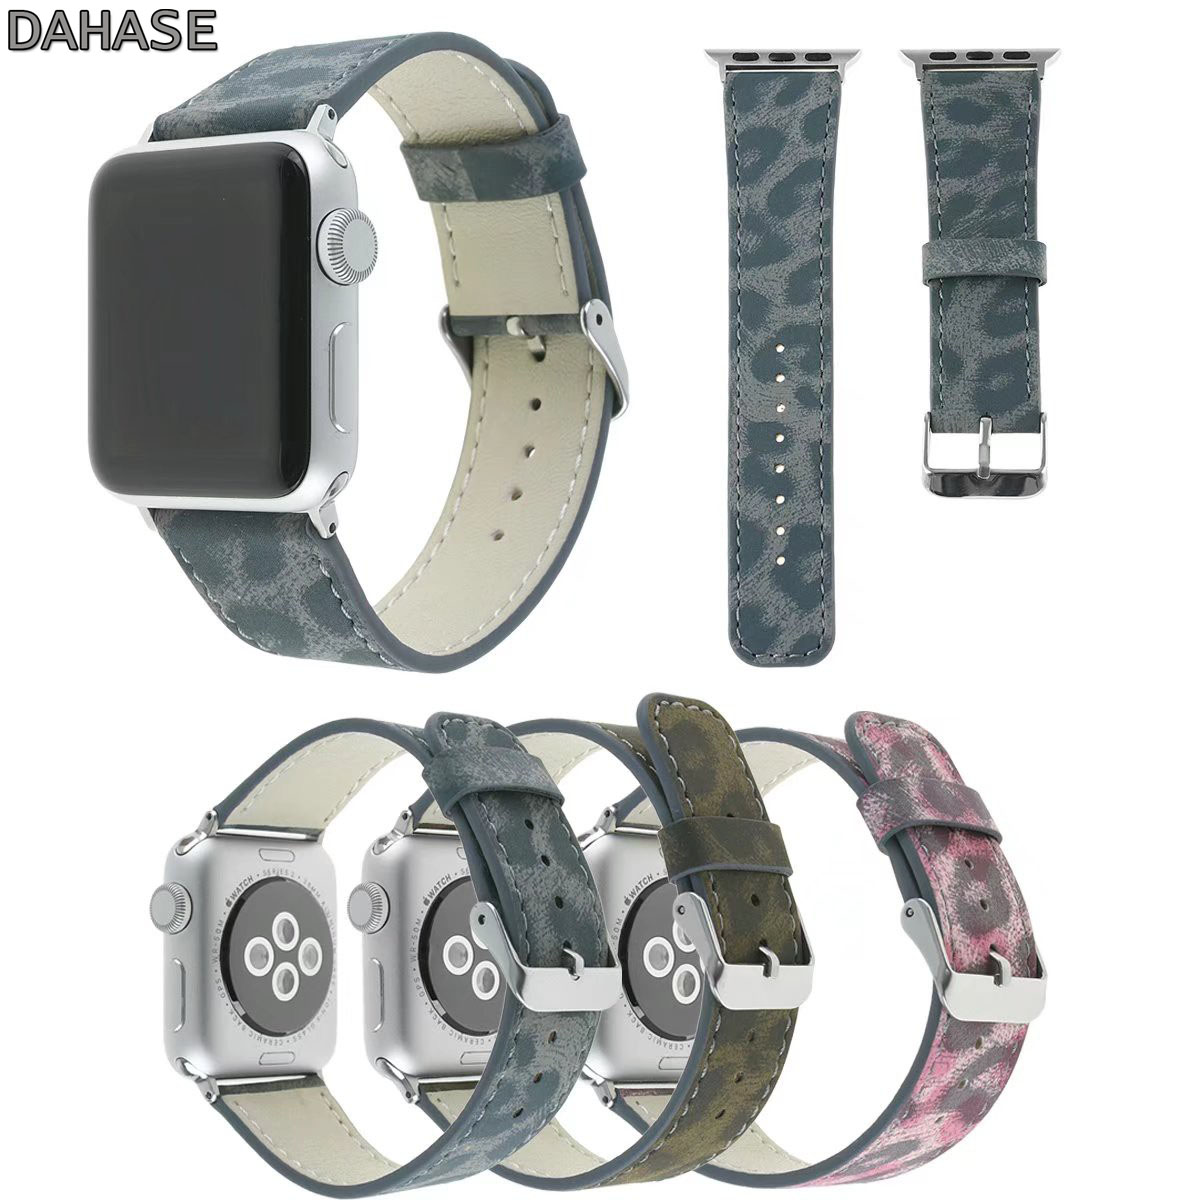 DAHASE Brown Gray Pink Leopard Leather Wrist Strap for Apple Watch Band Series 1/2/3 Bracelet for iWatch Strap 42mm 38mm